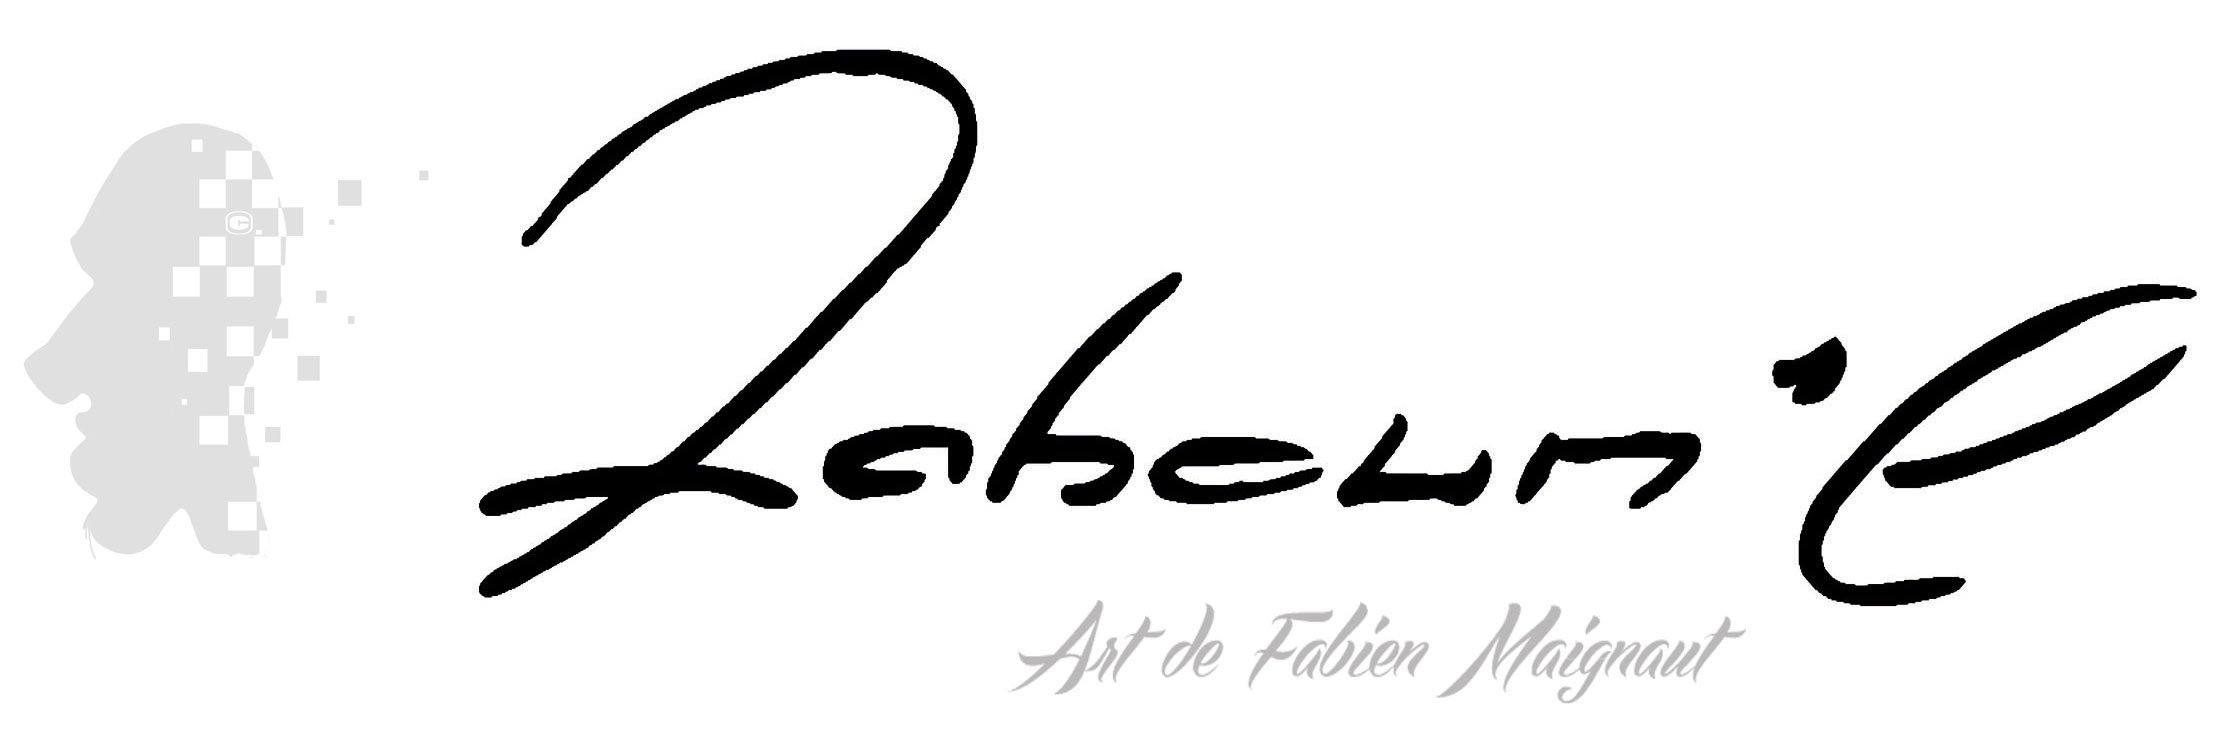 FABOUN'E Art